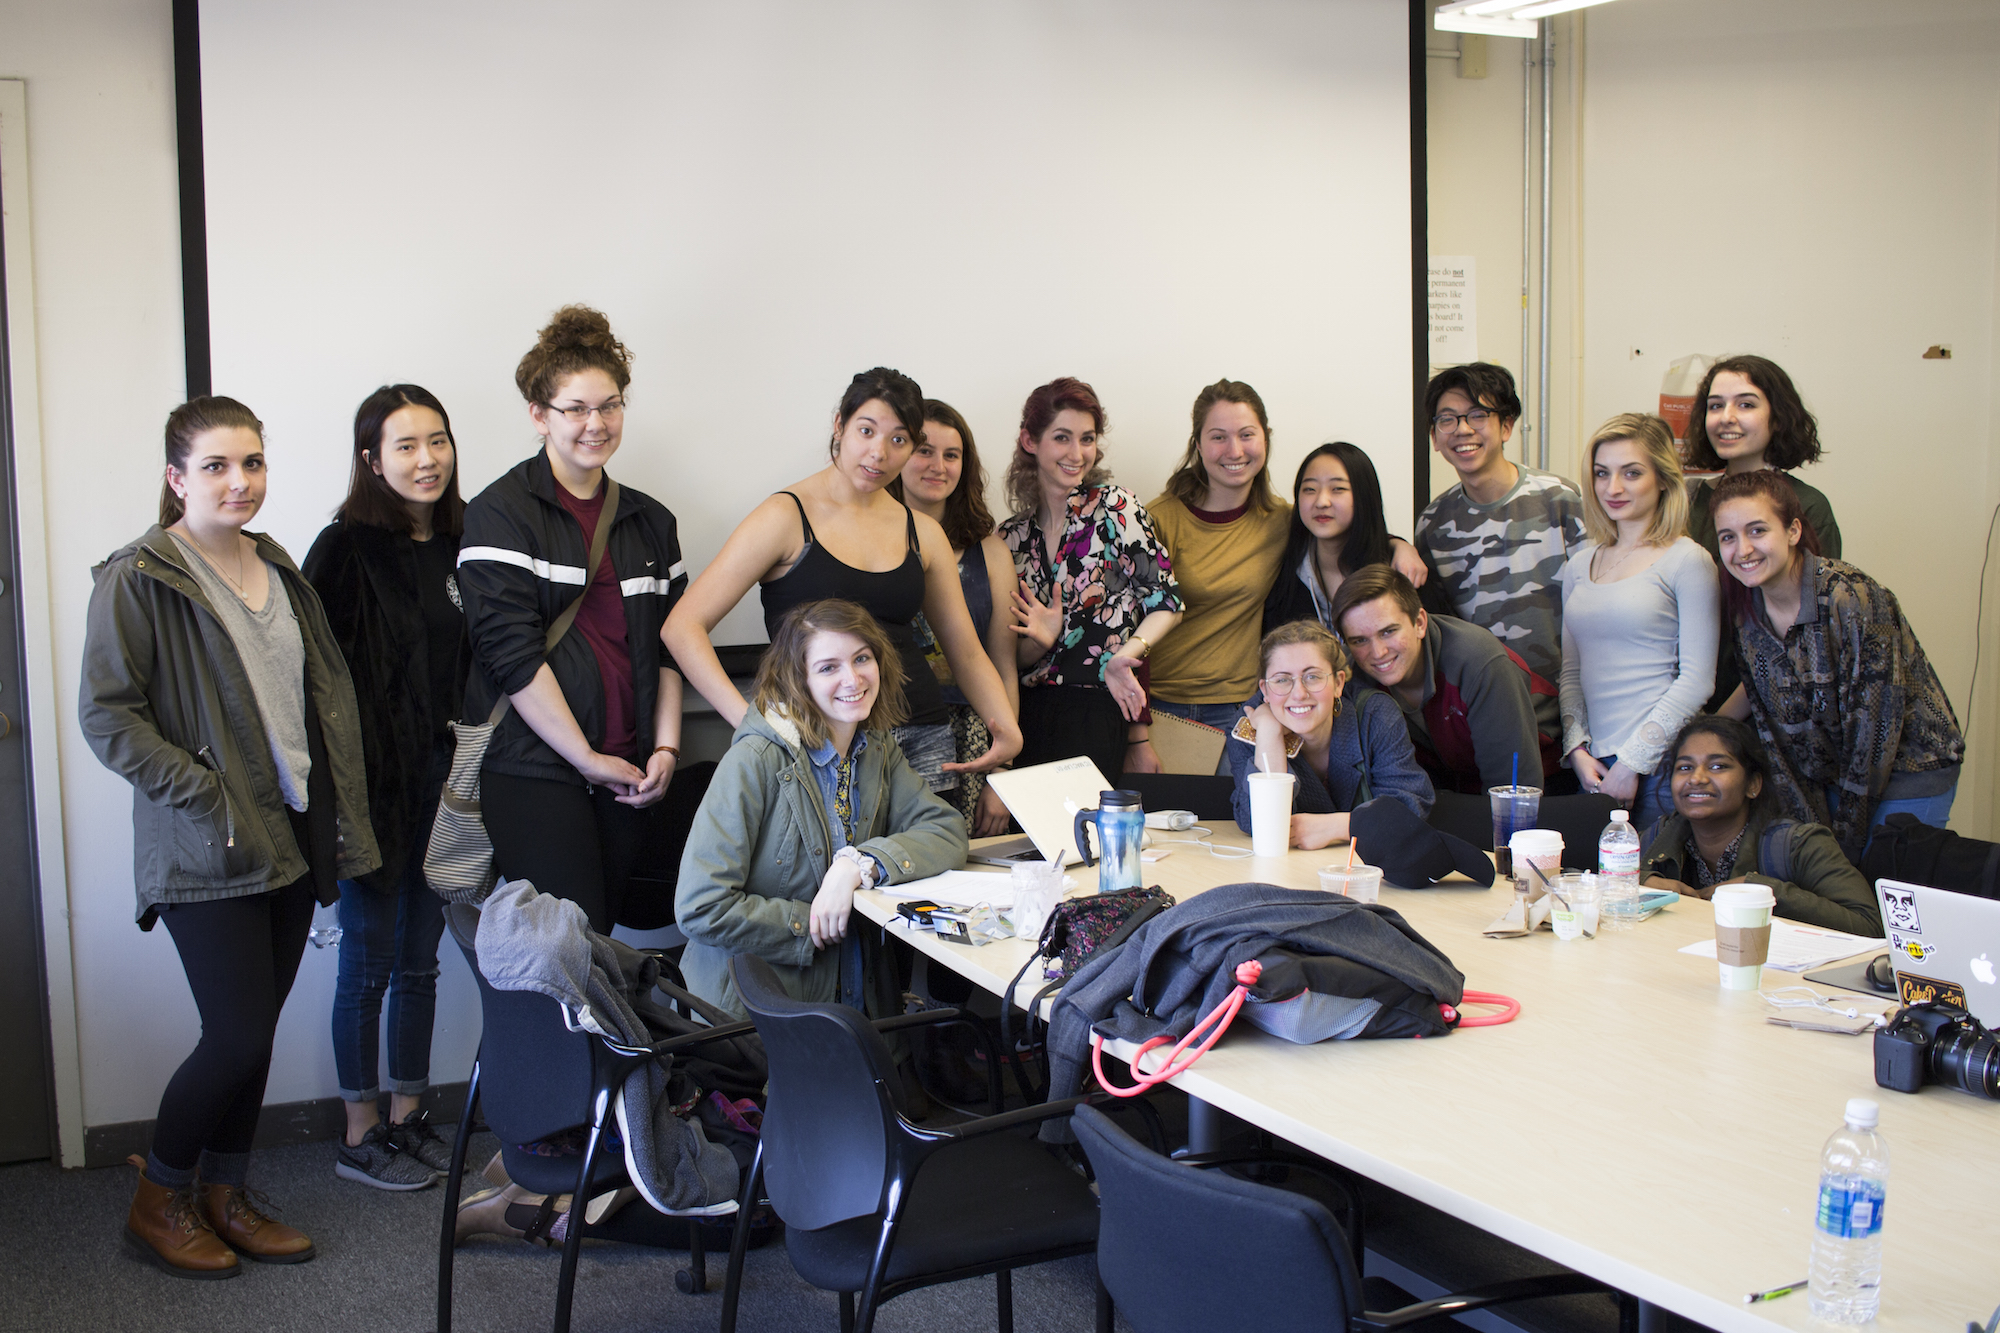 Geena Matuson (center) as guest lecturer with Max Grinnell at MassArt, April 2016.